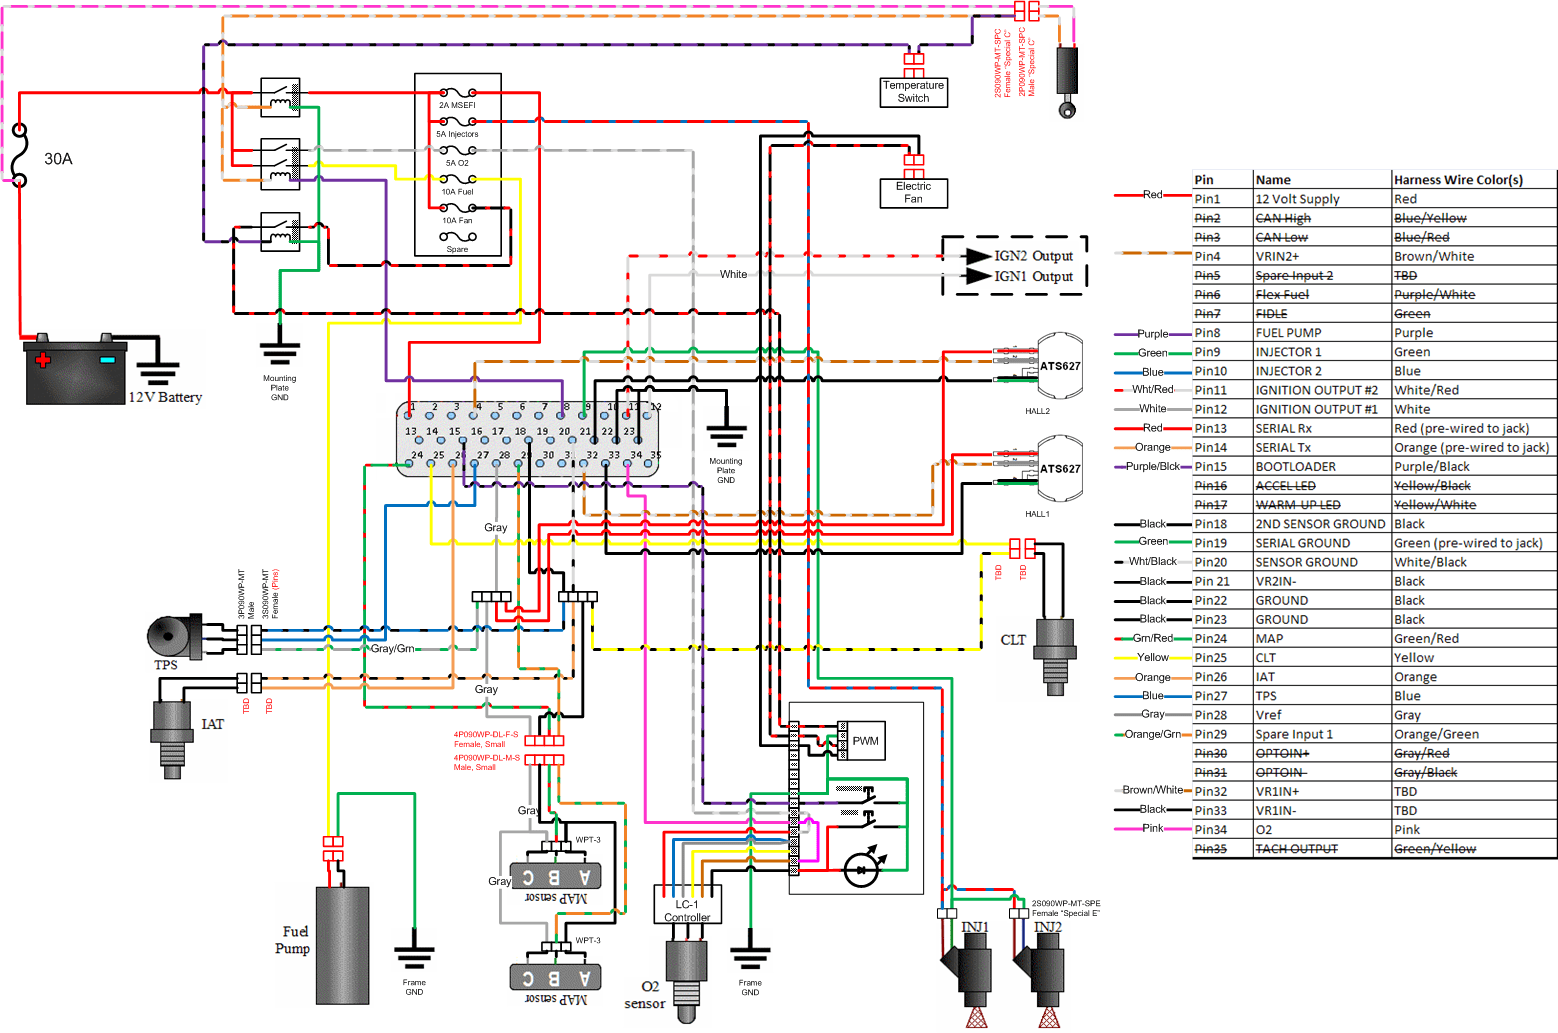 hight resolution of an am spyder wiring diagram wiring diagramwiring diagram for can am spyder wiring diagram toolbox